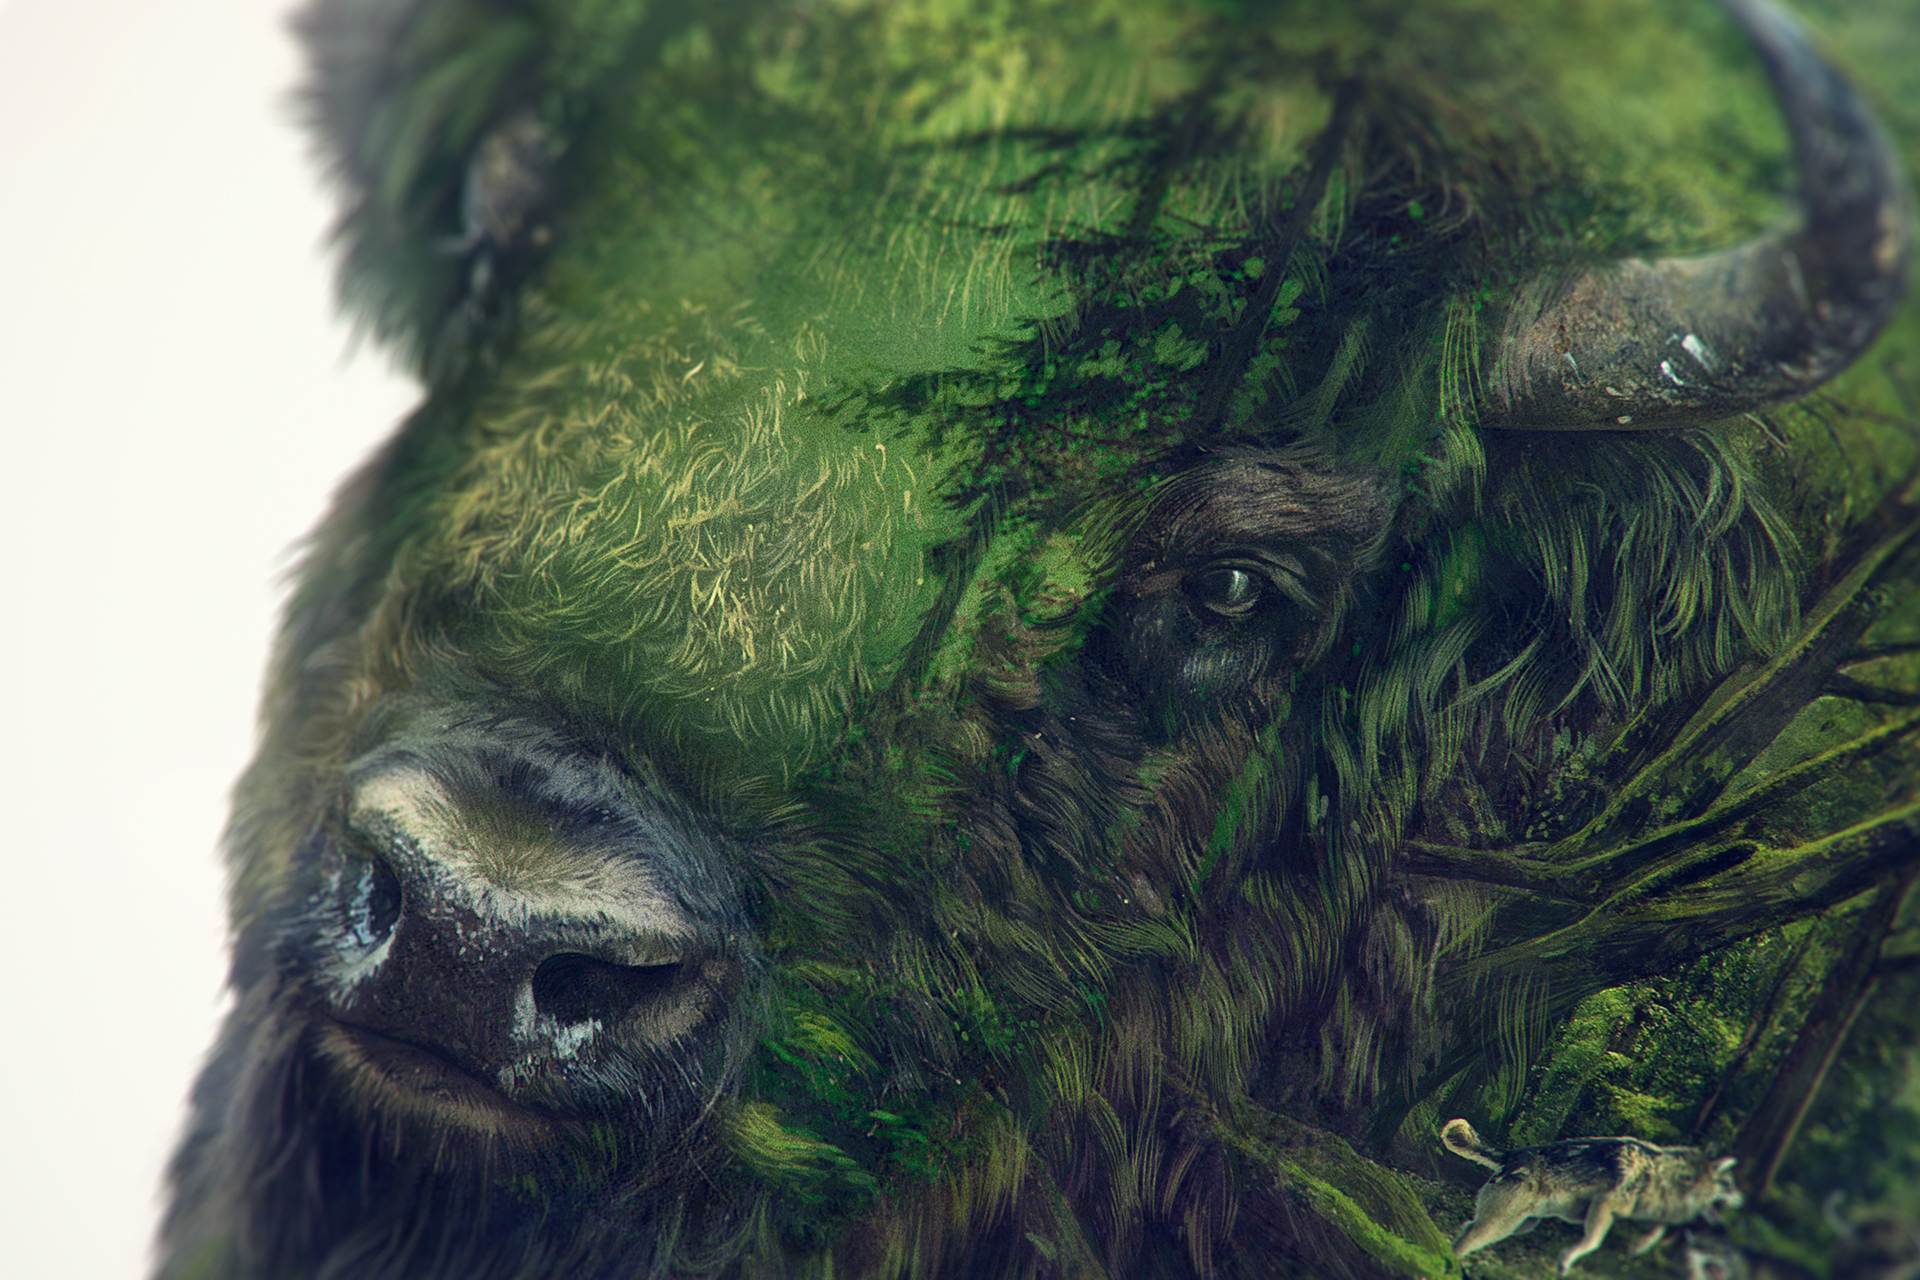 Digital Art: Bison by Lukasz Poslad